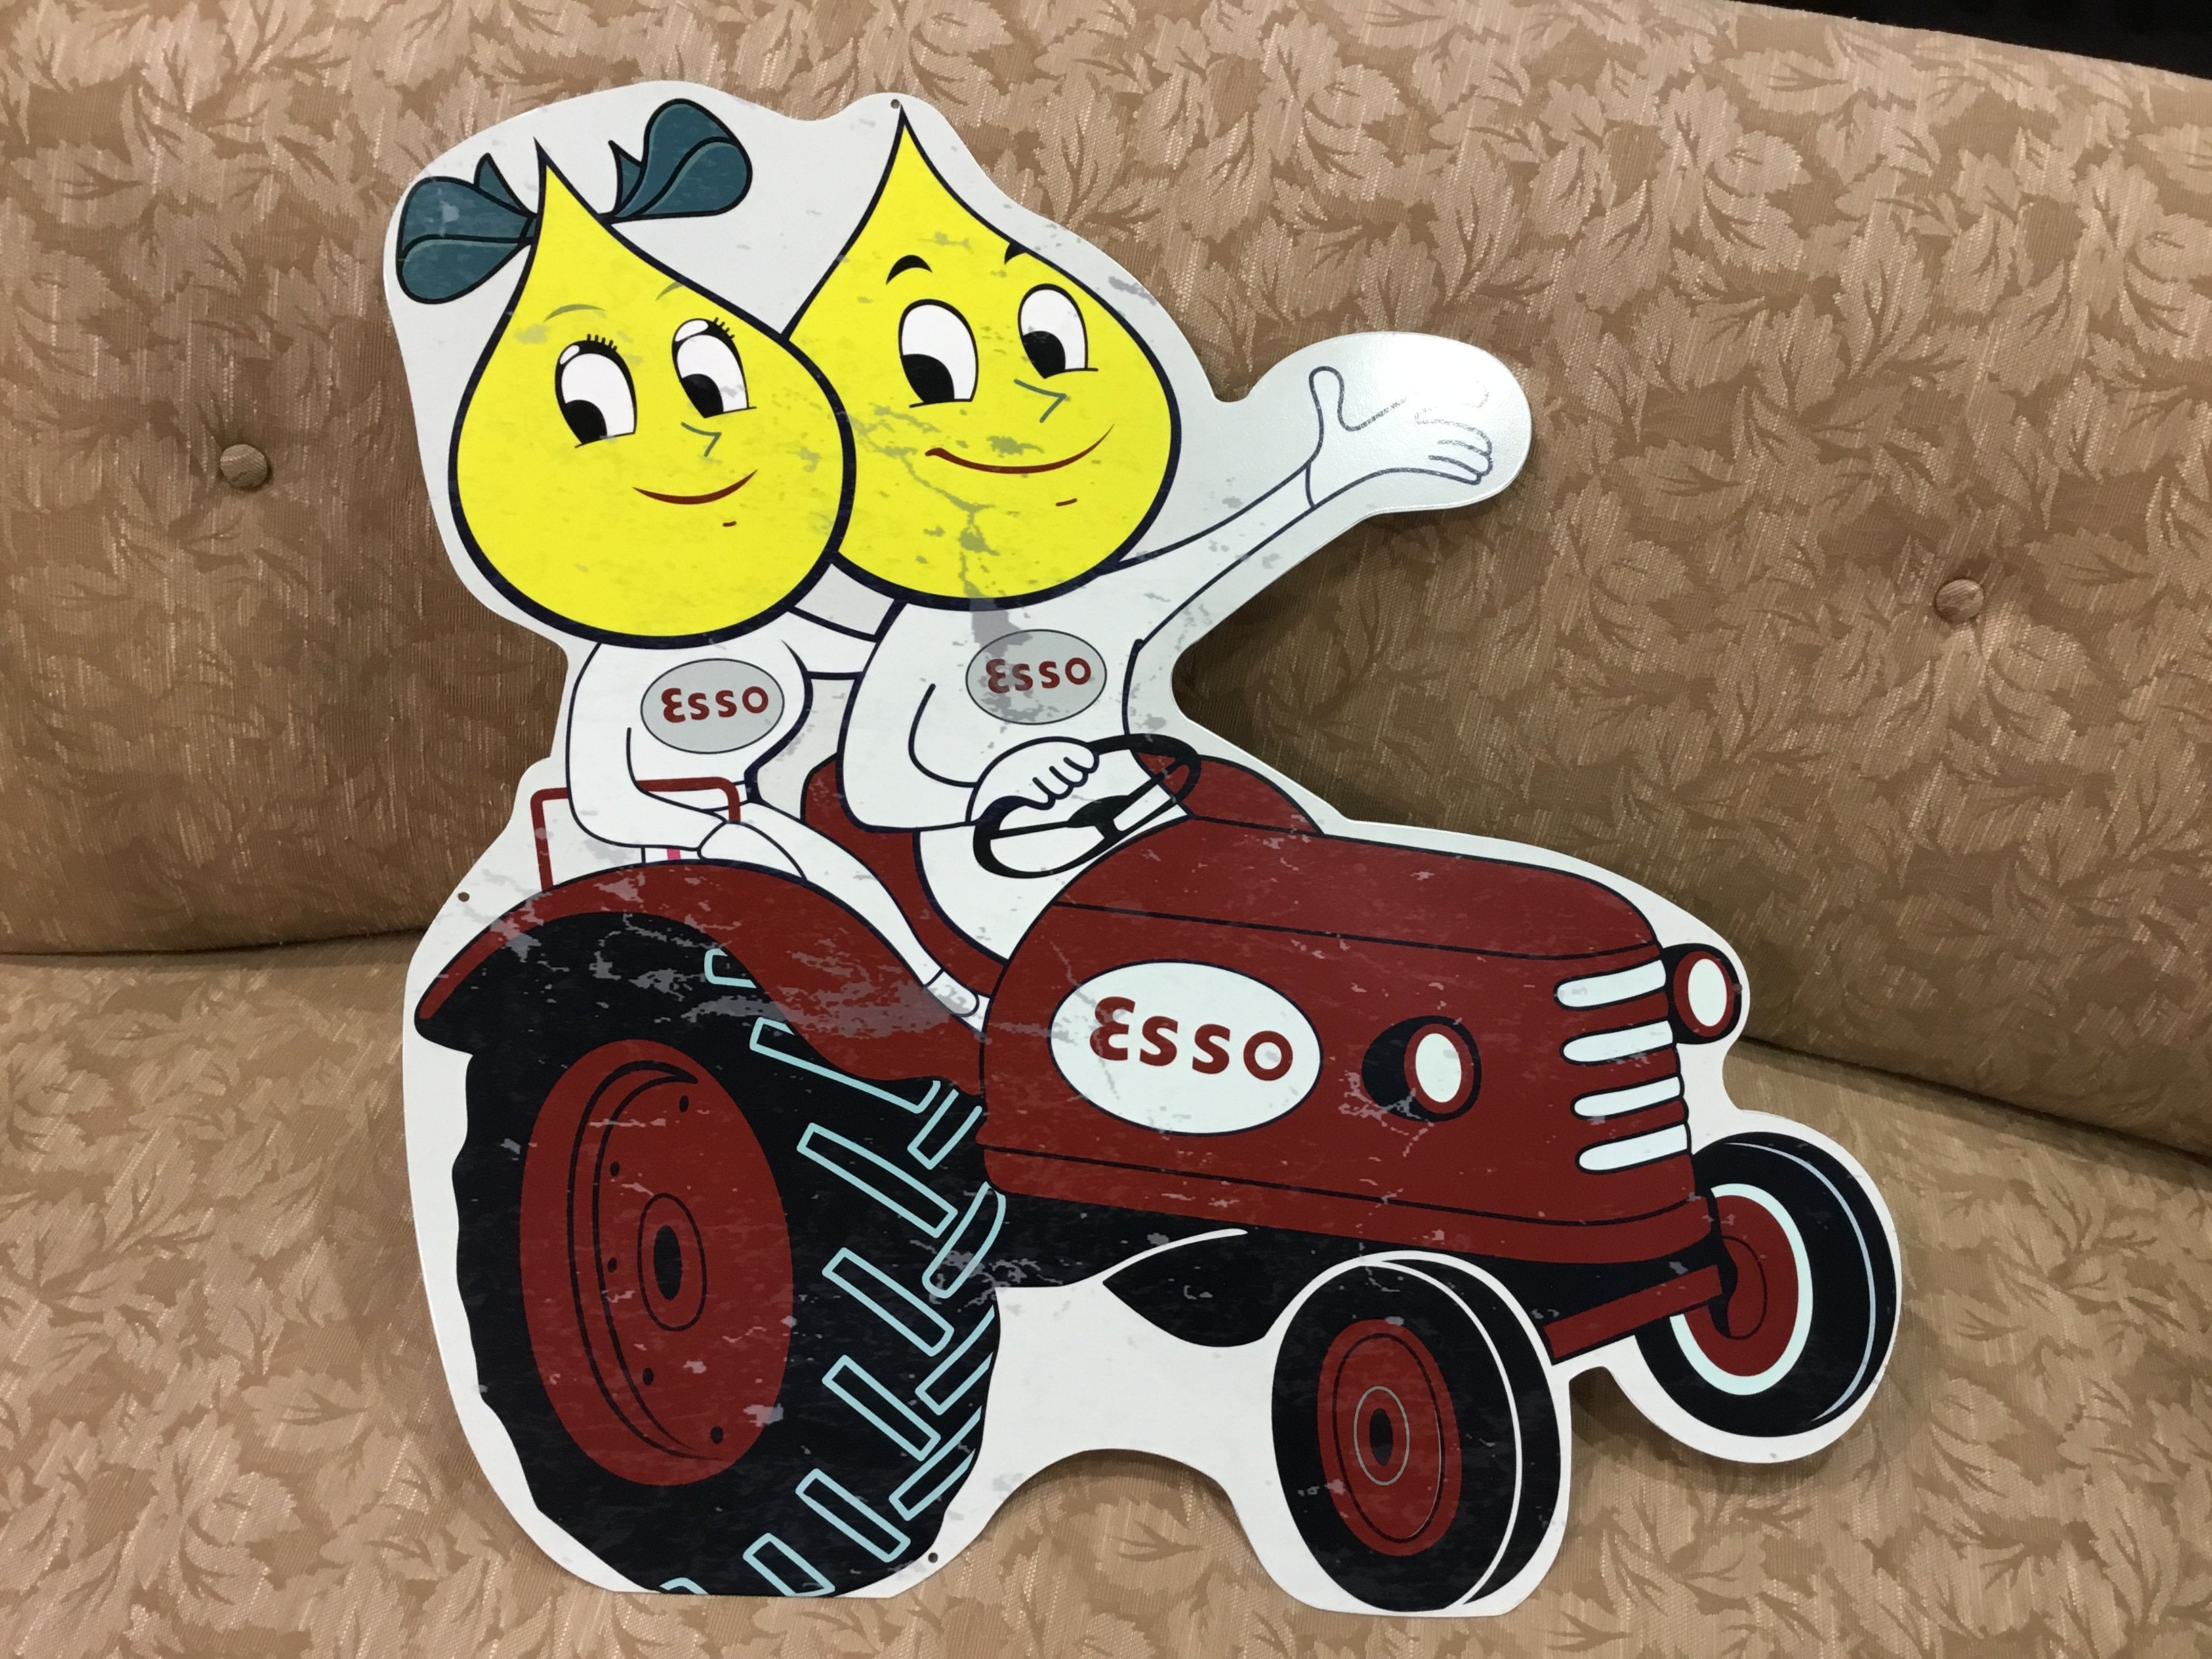 TIN SIGN - Esso tractor